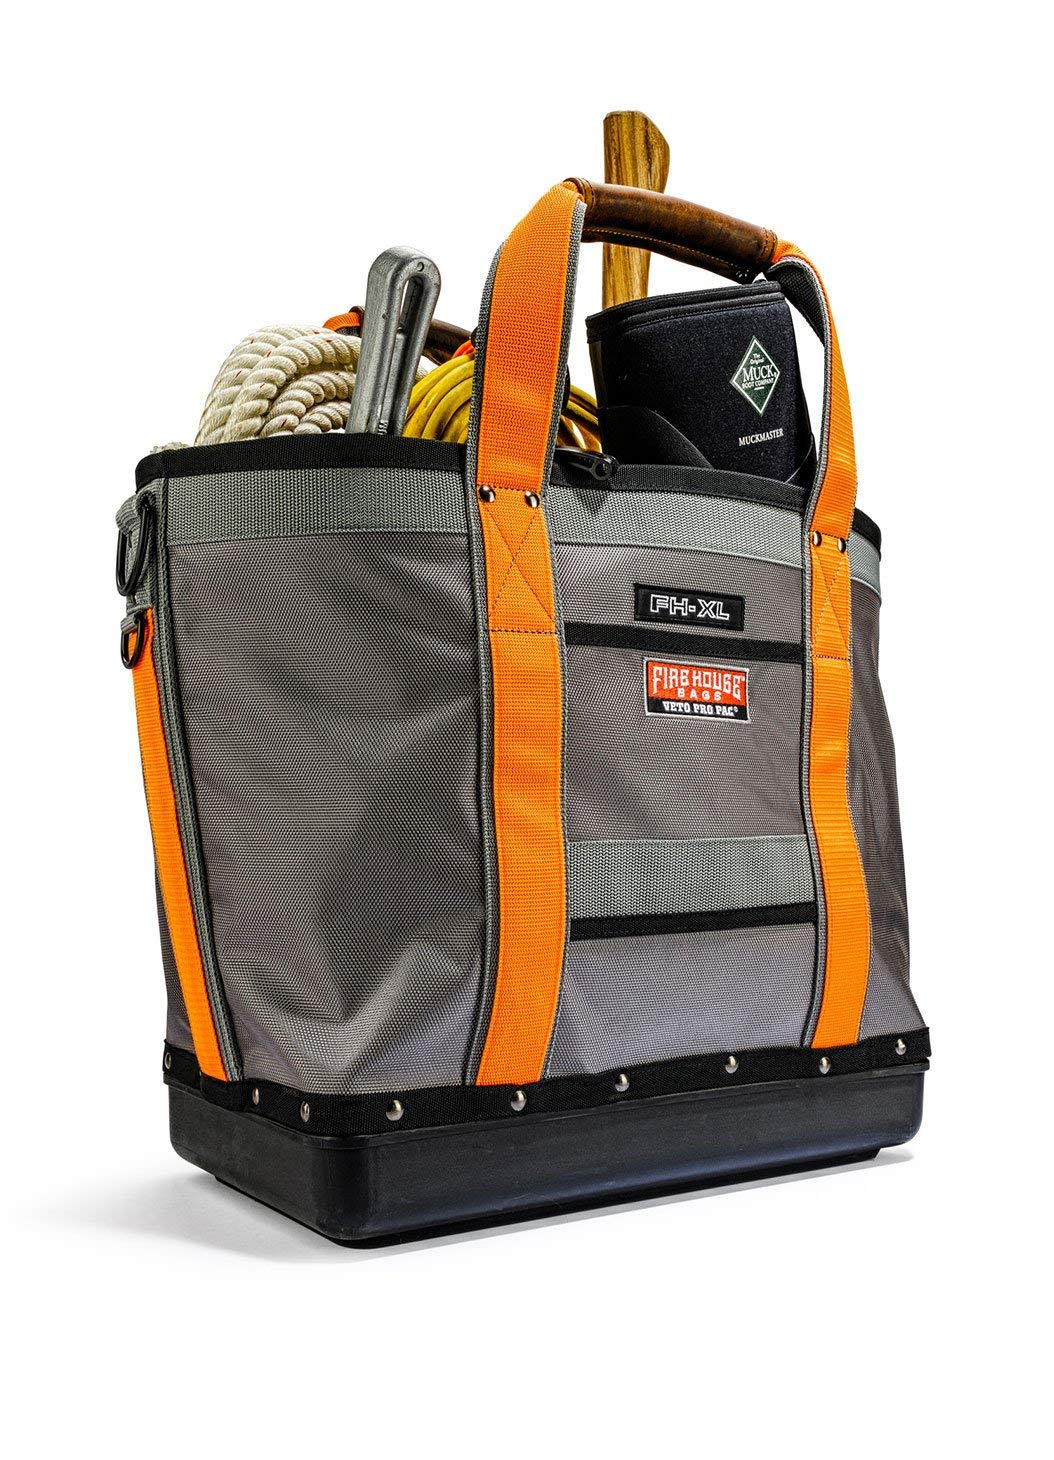 Veto FH-XL (Extra Large Utility Tote) by Veto